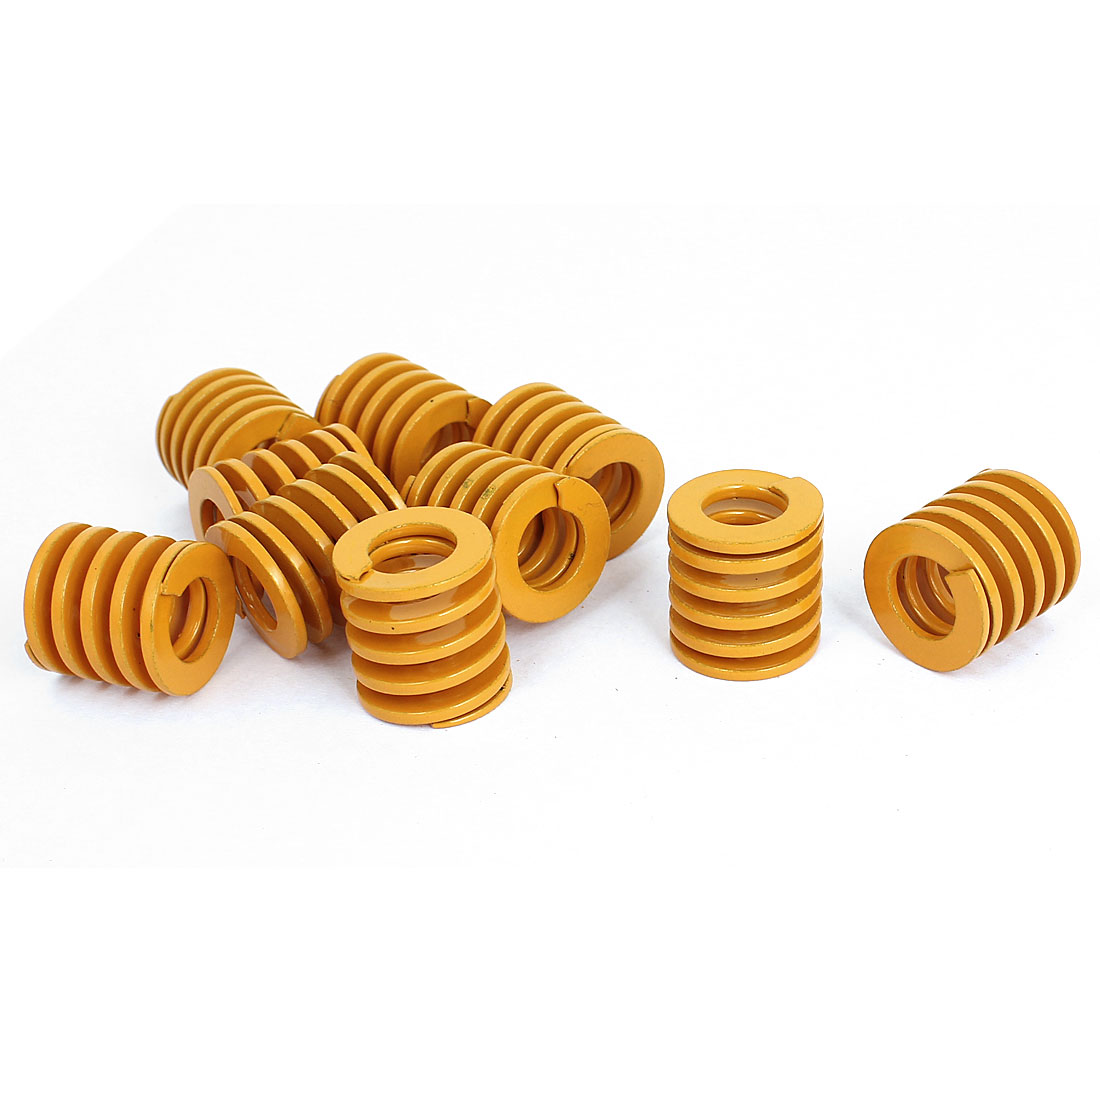 20mm OD 20mm Long Light Load Stamping Compression Mold Die Spring Yellow 10pcs